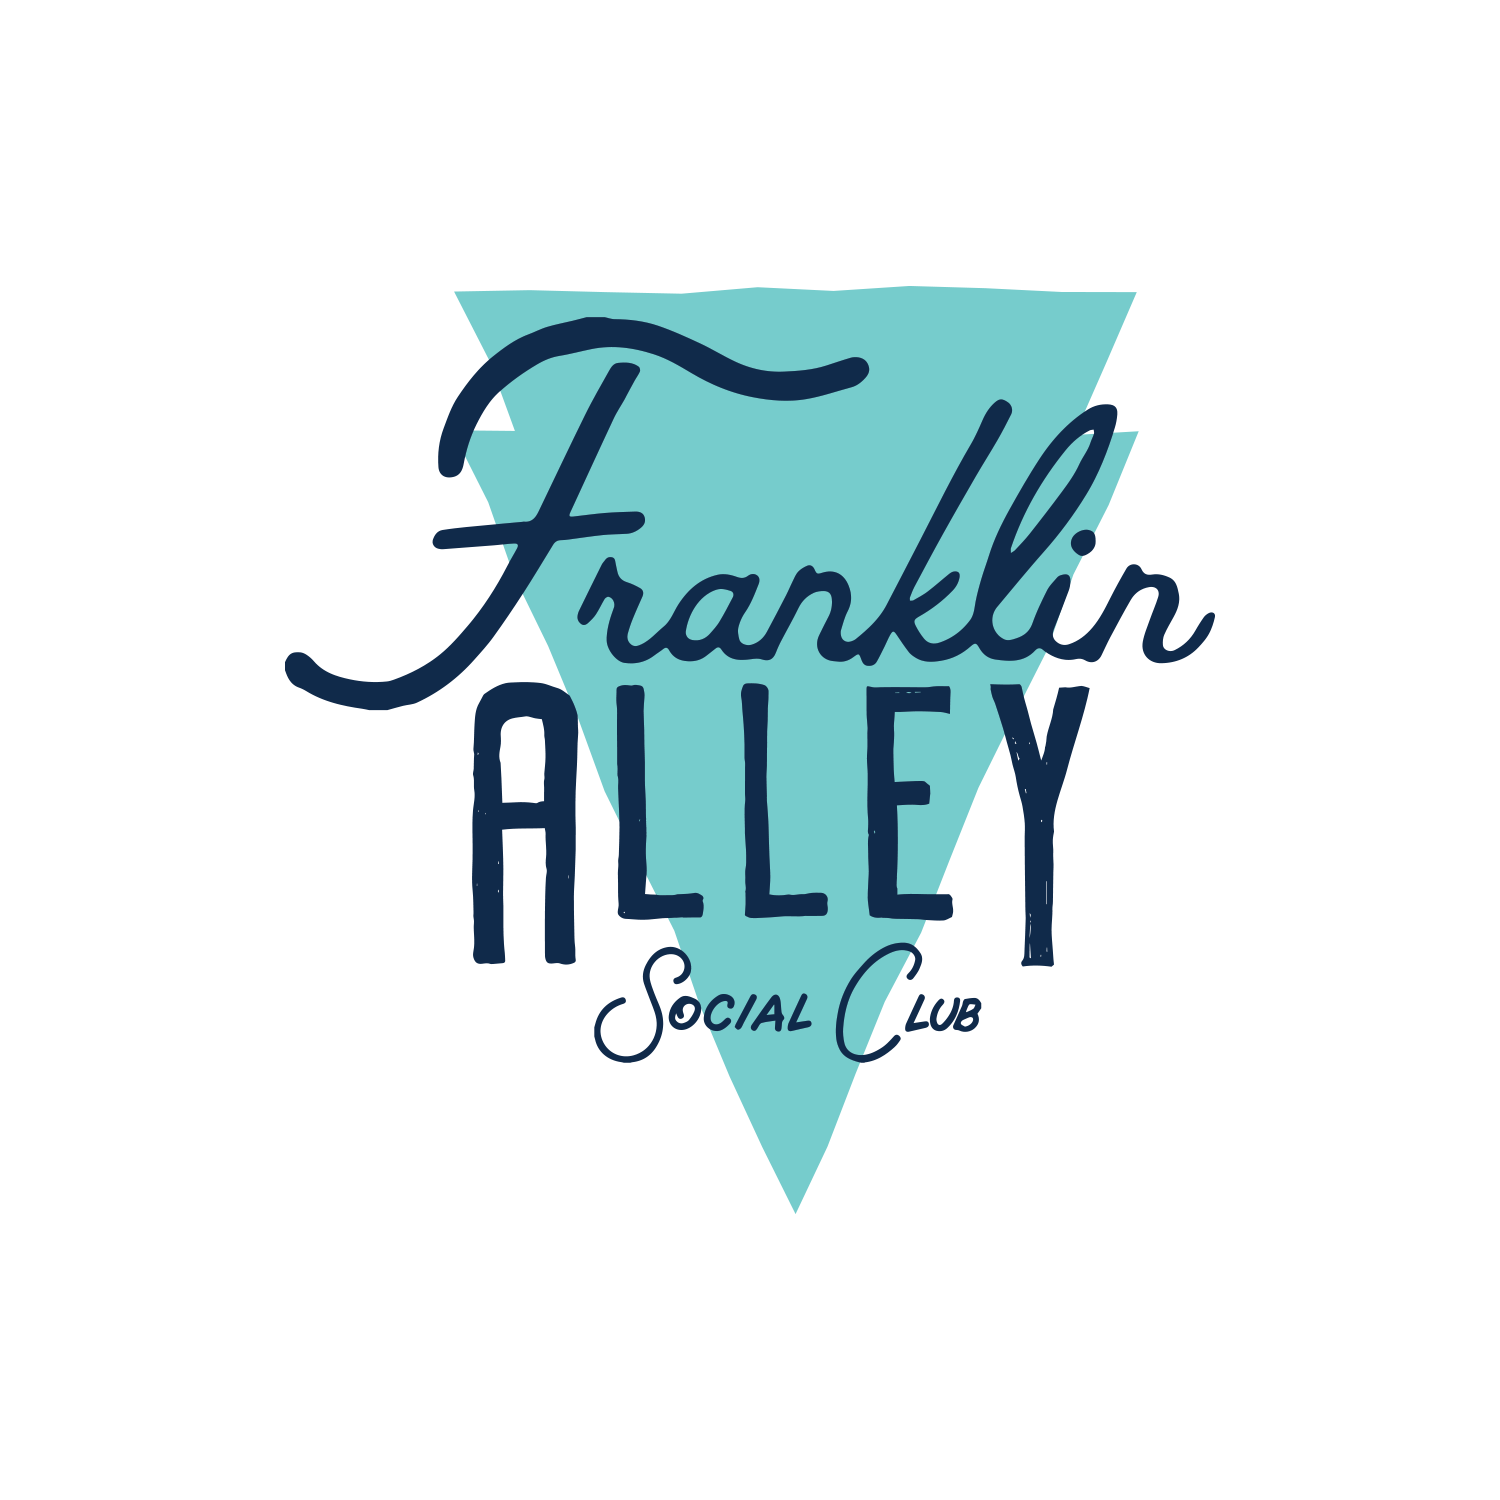 Franklin Alley Social Club